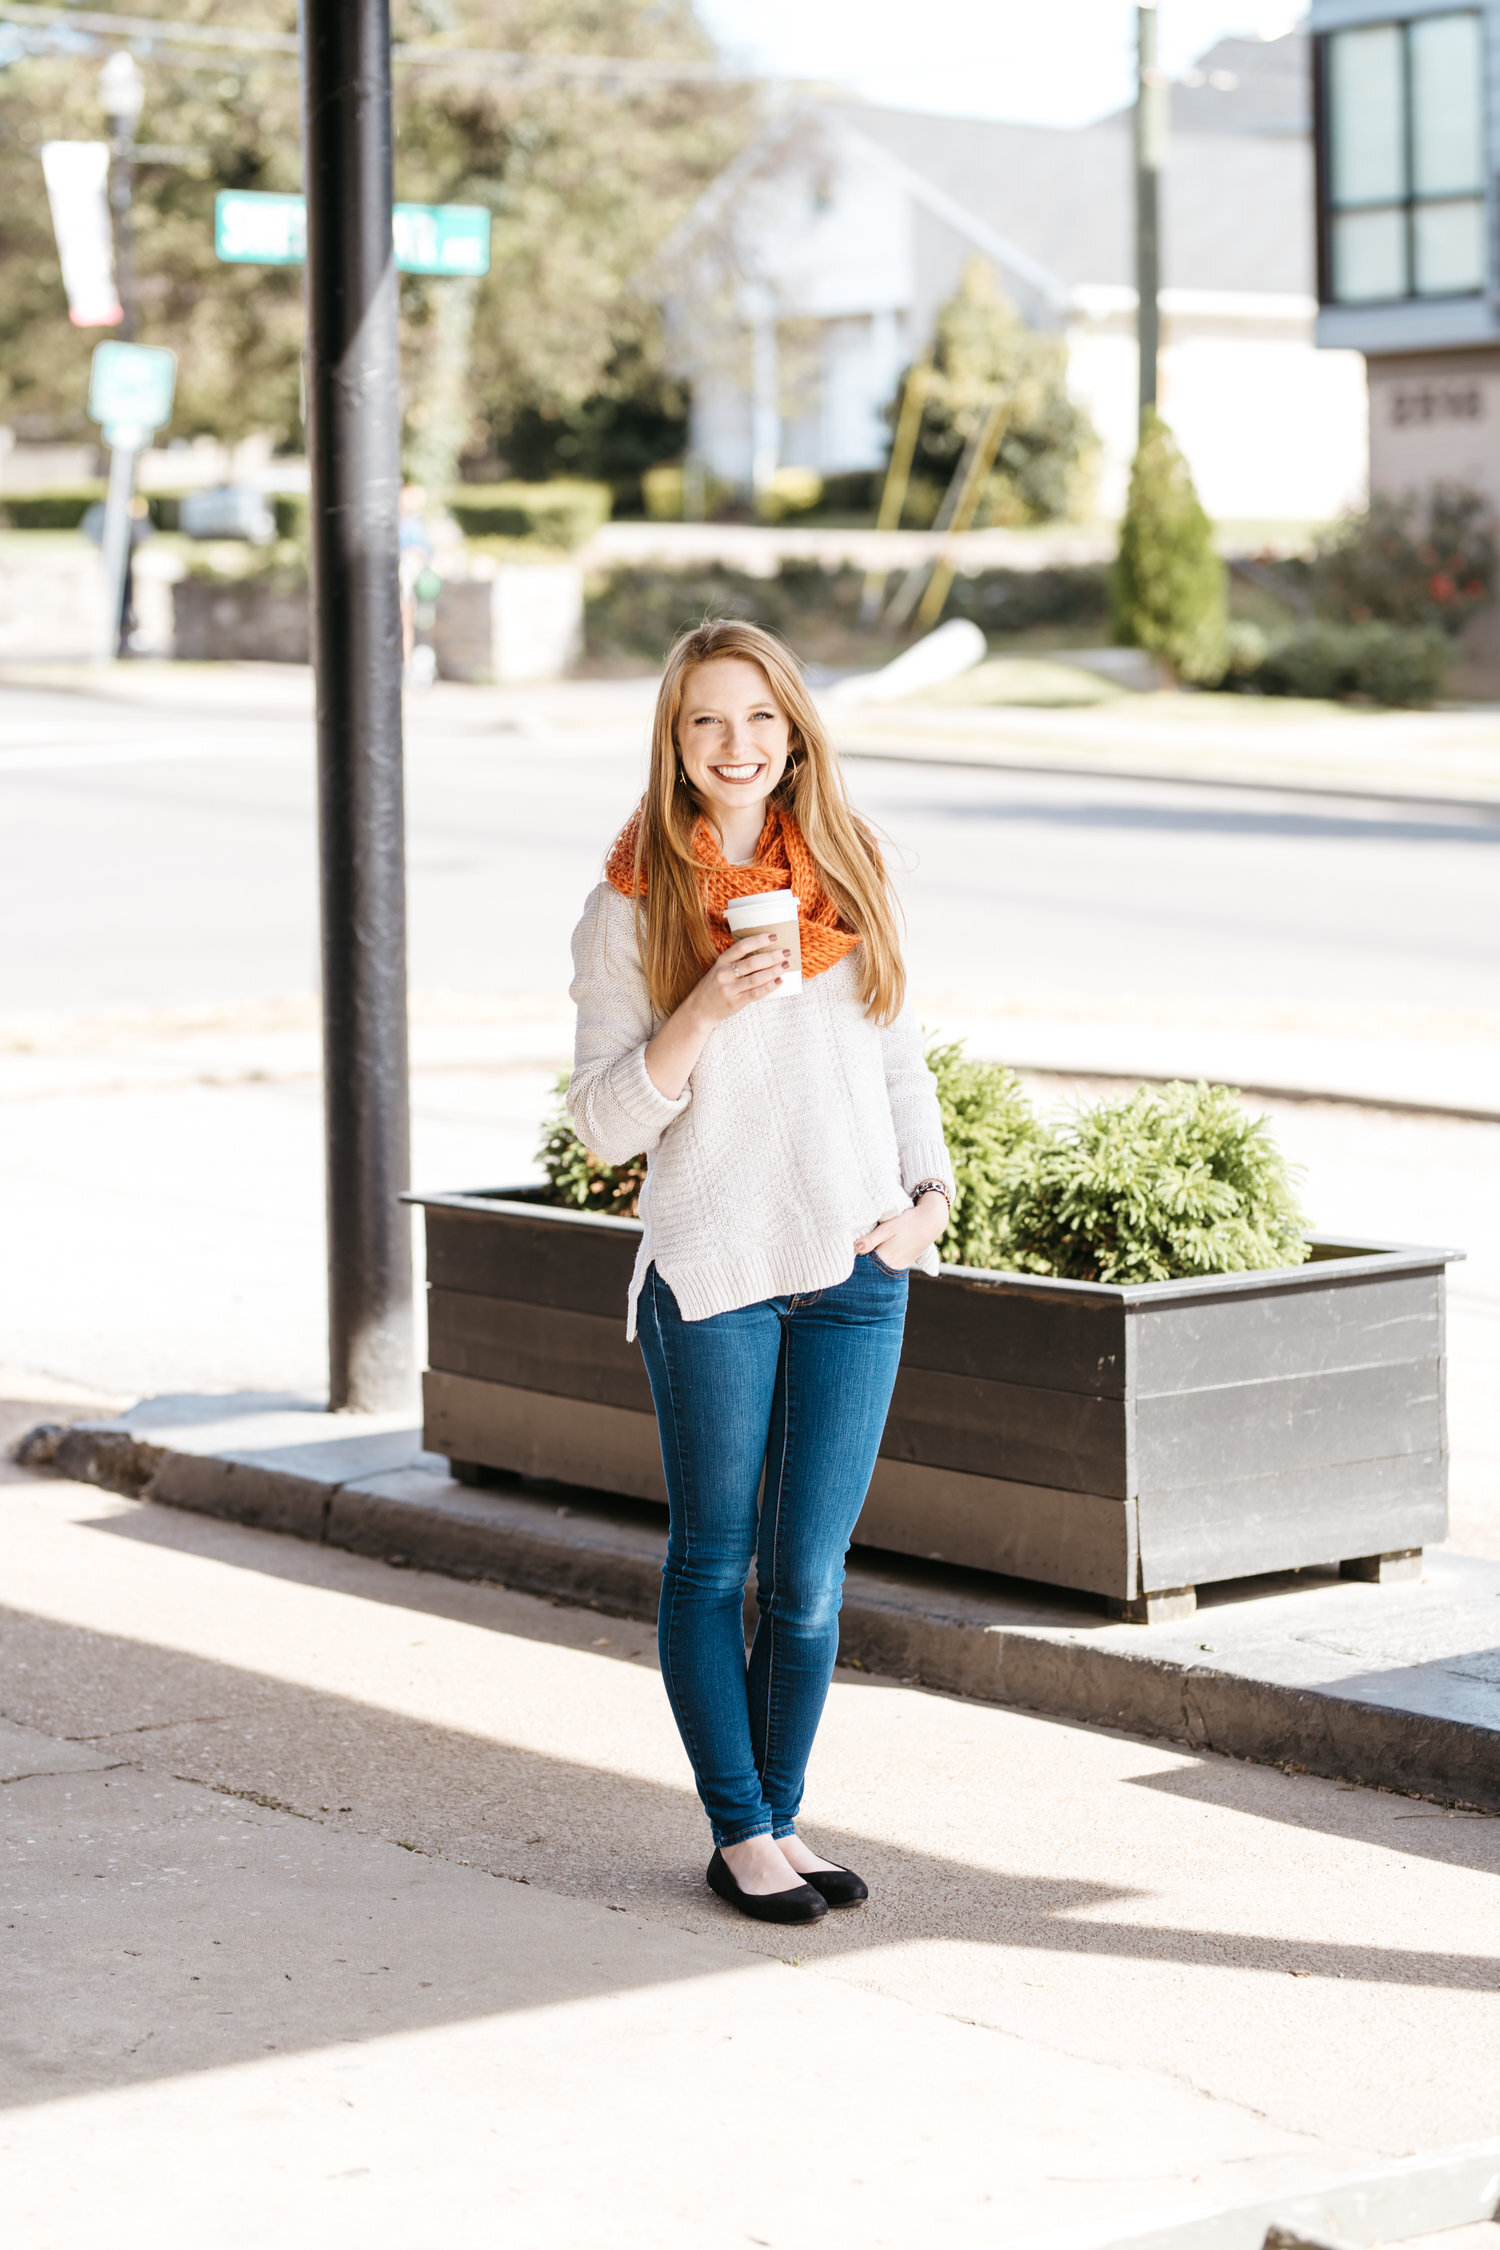 Coffee-with-Kristi-Nashville-Influencer-Blogger-by-Weatherly-Photography-181023-4016.jpg